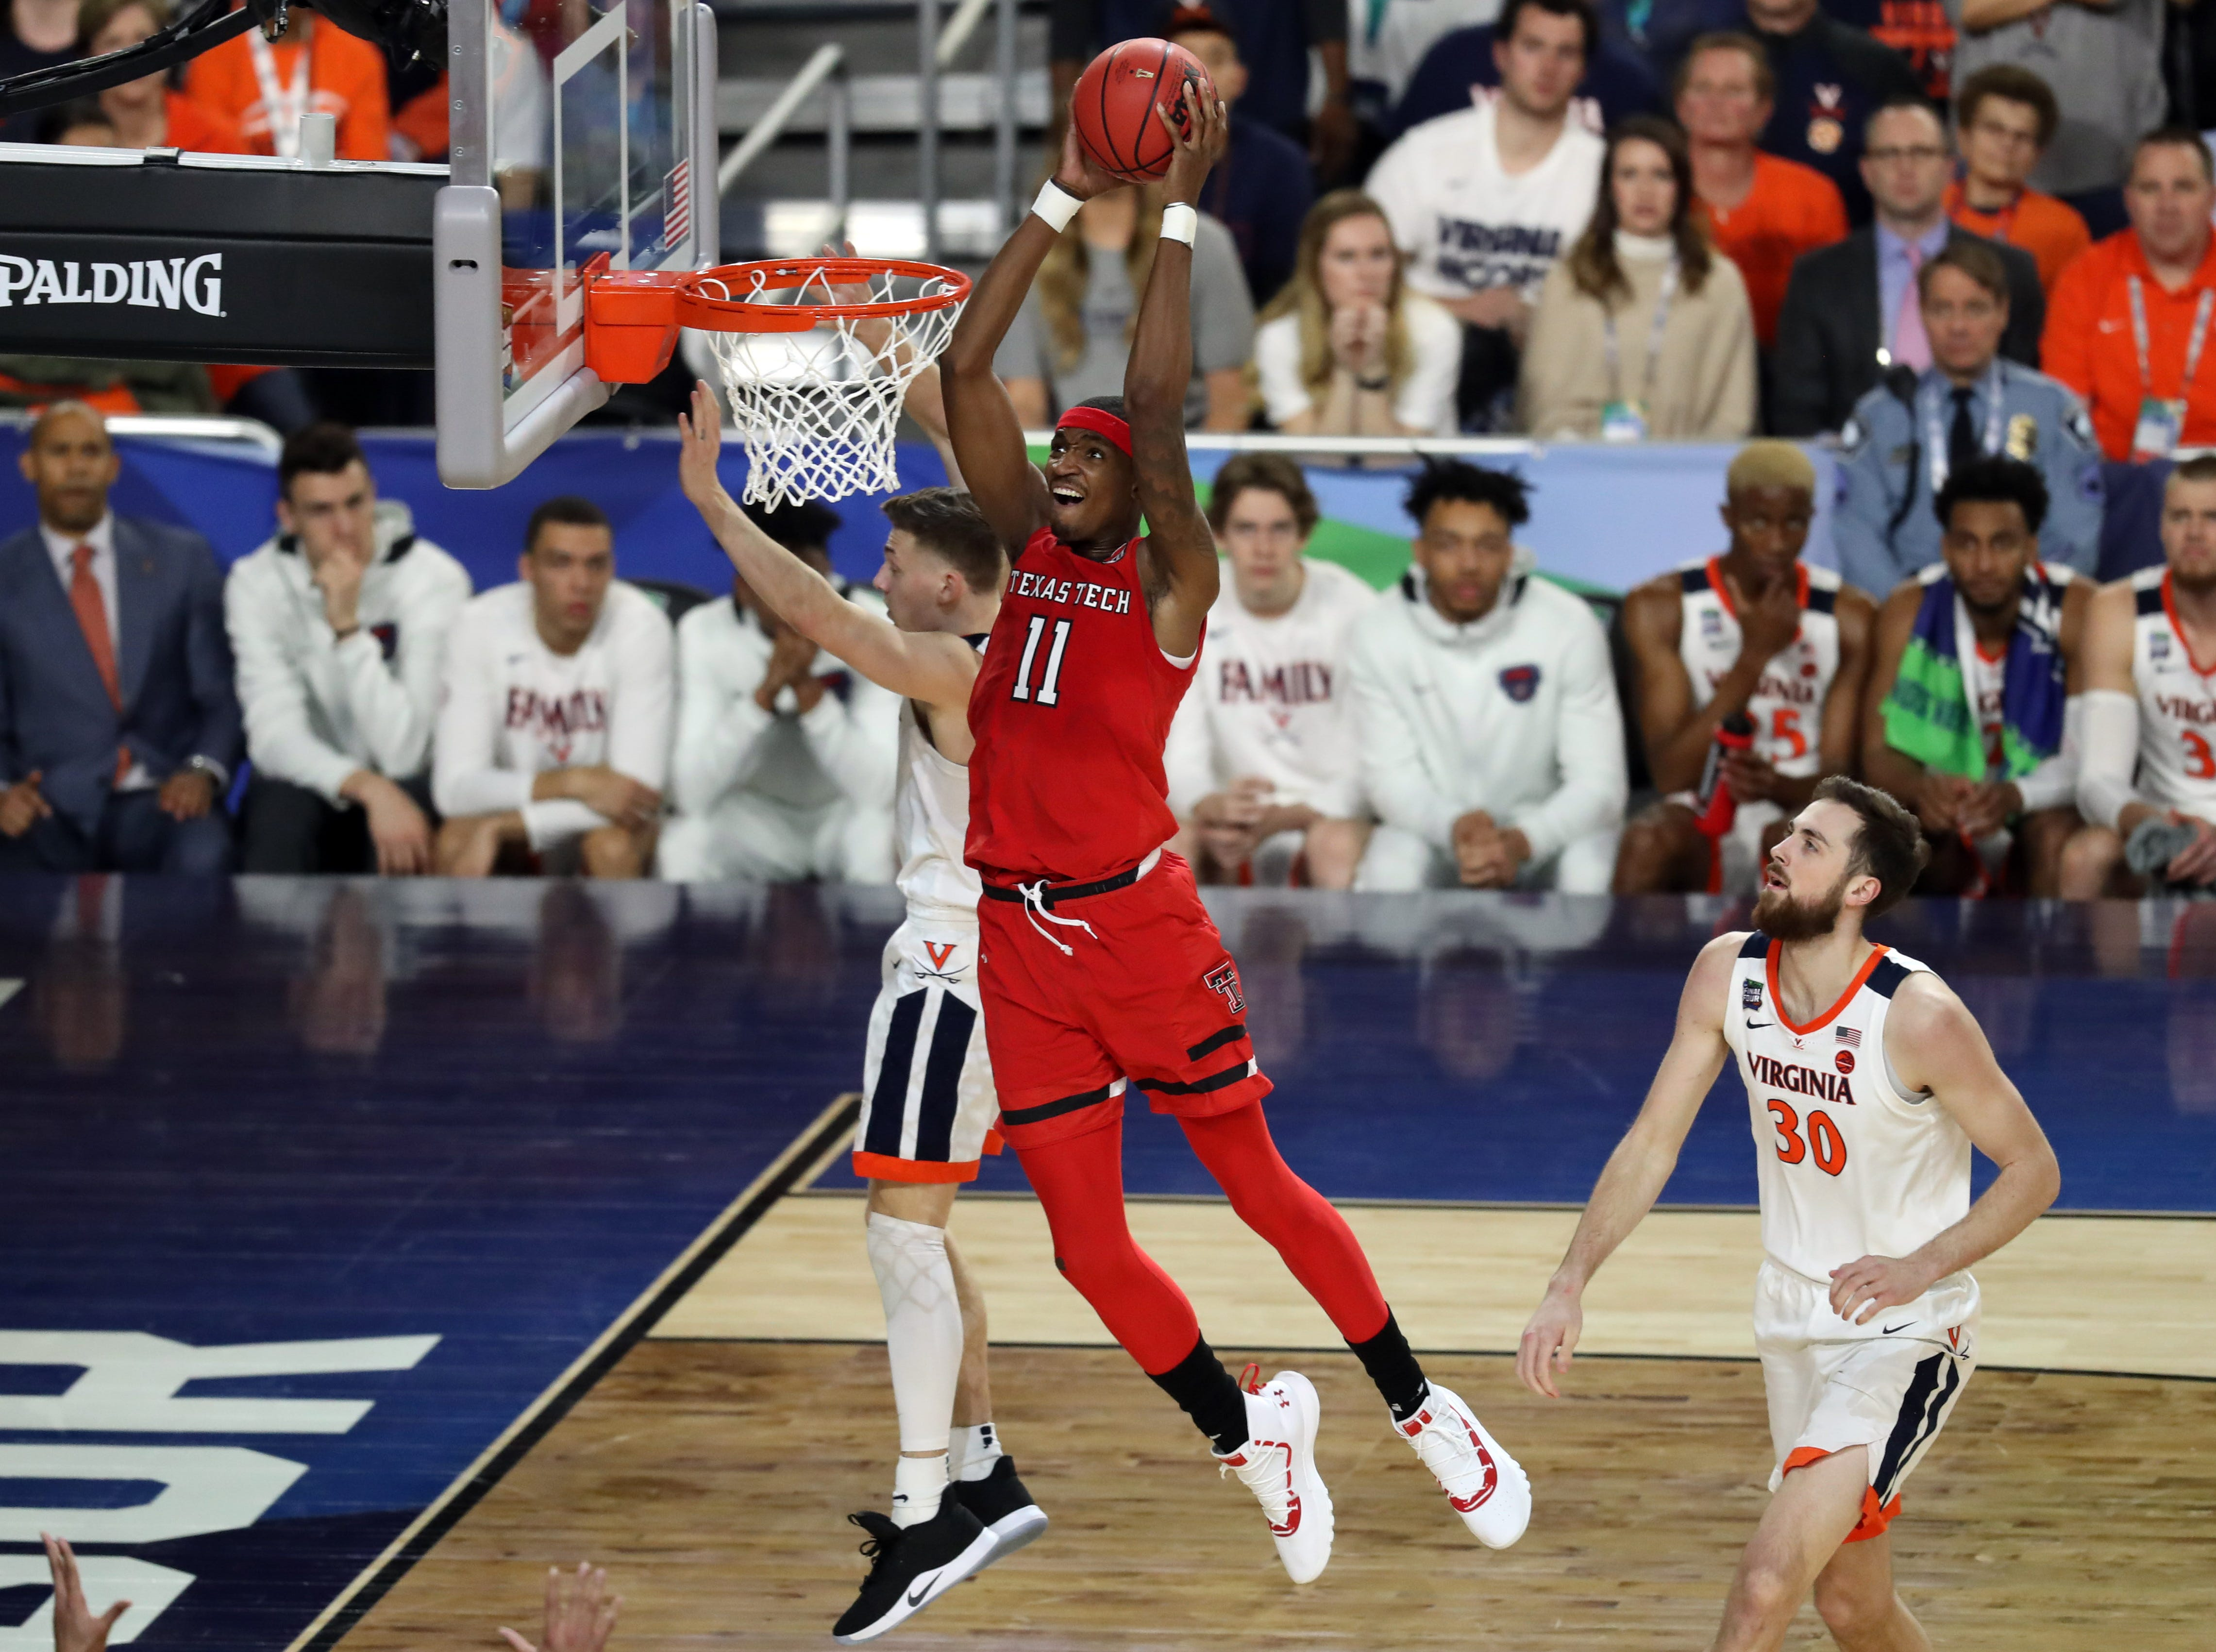 Apr 8, 2019; Minneapolis, MN, USA; Texas Tech Red Raiders forward Tariq Owens (11) dunks the ball during the first half against the Virginia Cavaliers in the championship game of the 2019 men's Final Four at US Bank Stadium. Mandatory Credit: Brace Hemmelgarn-USA TODAY Sports